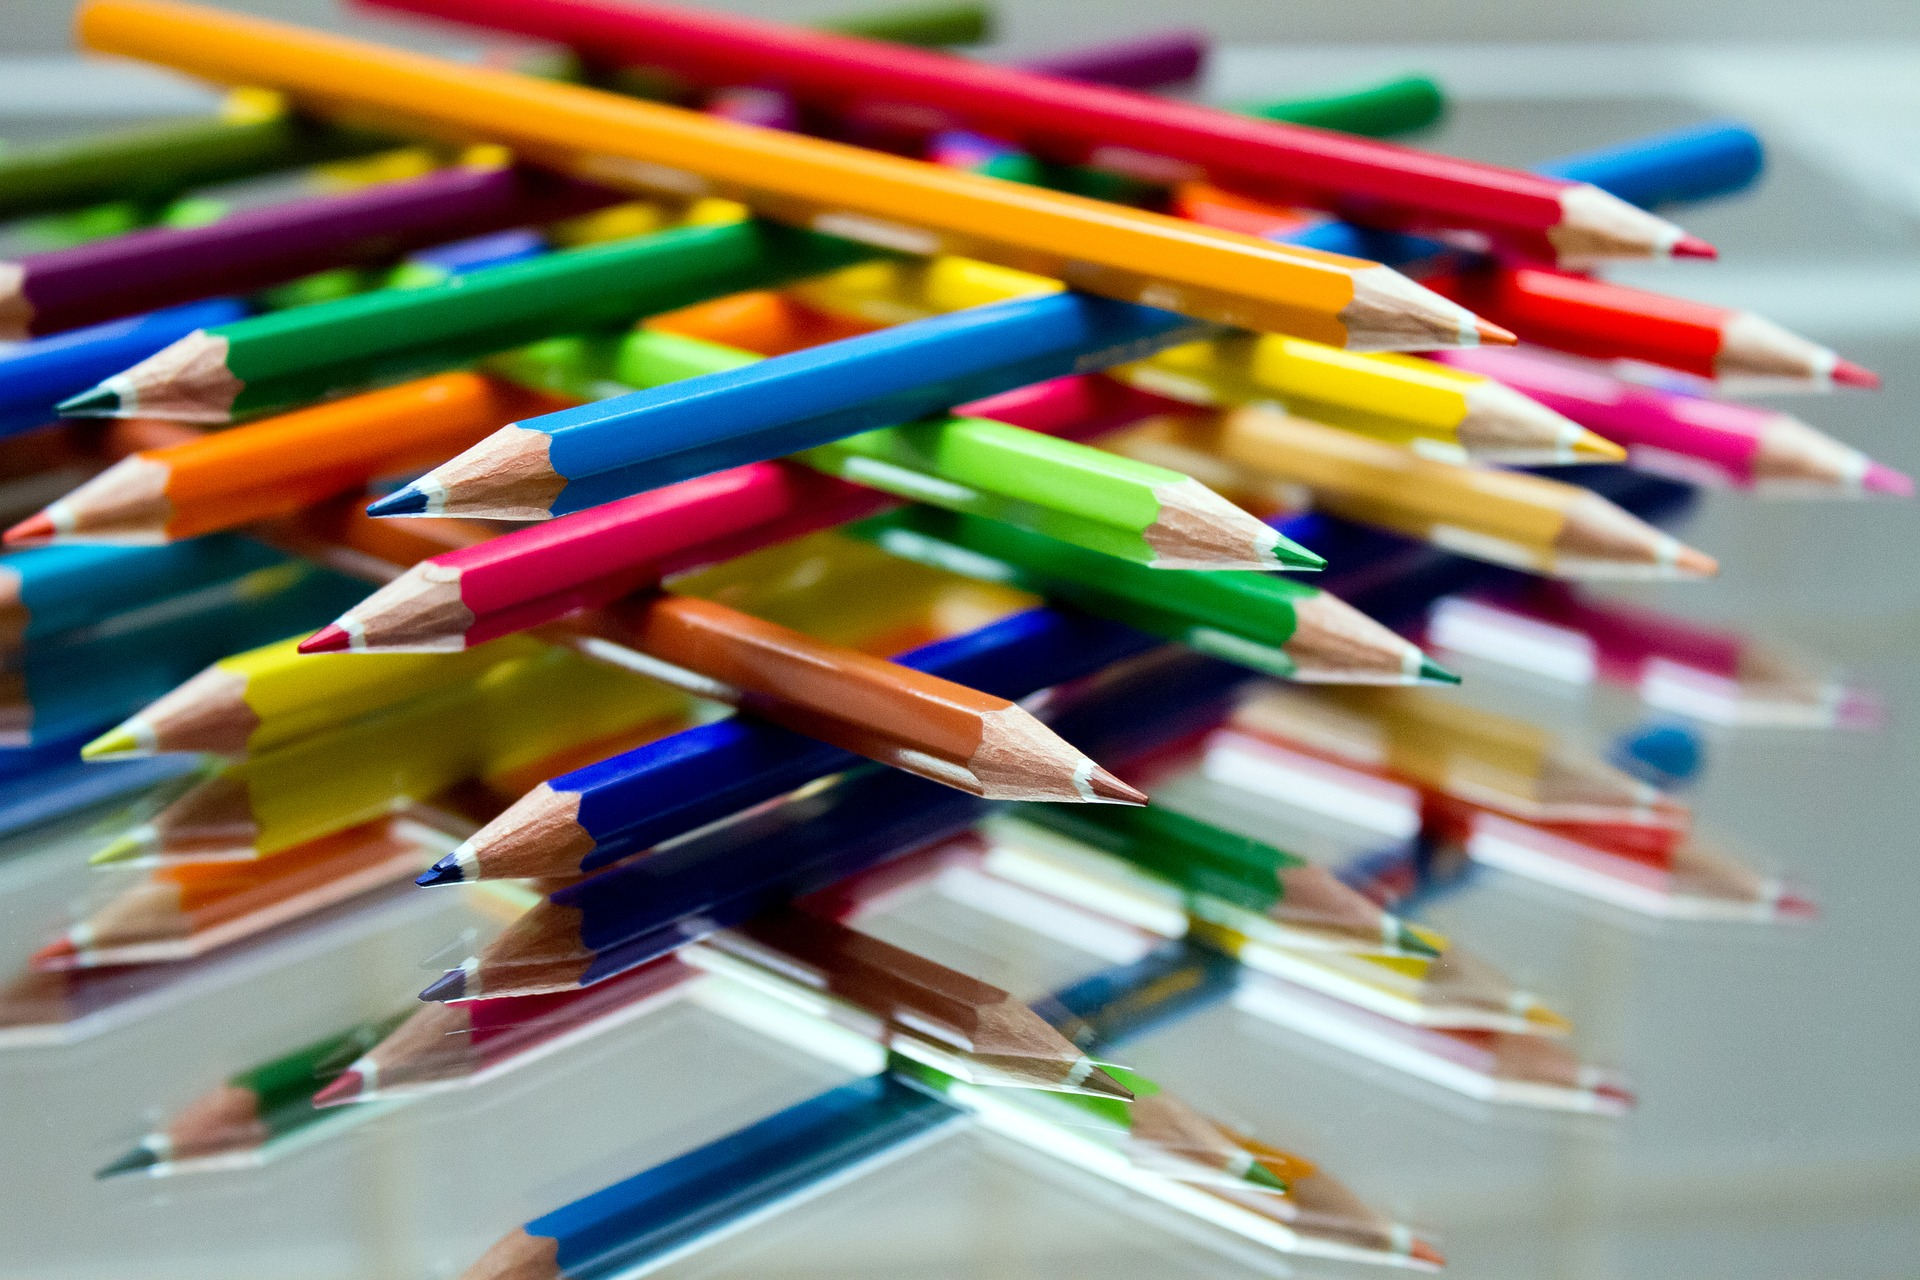 Colored Pencils 2934857 1920